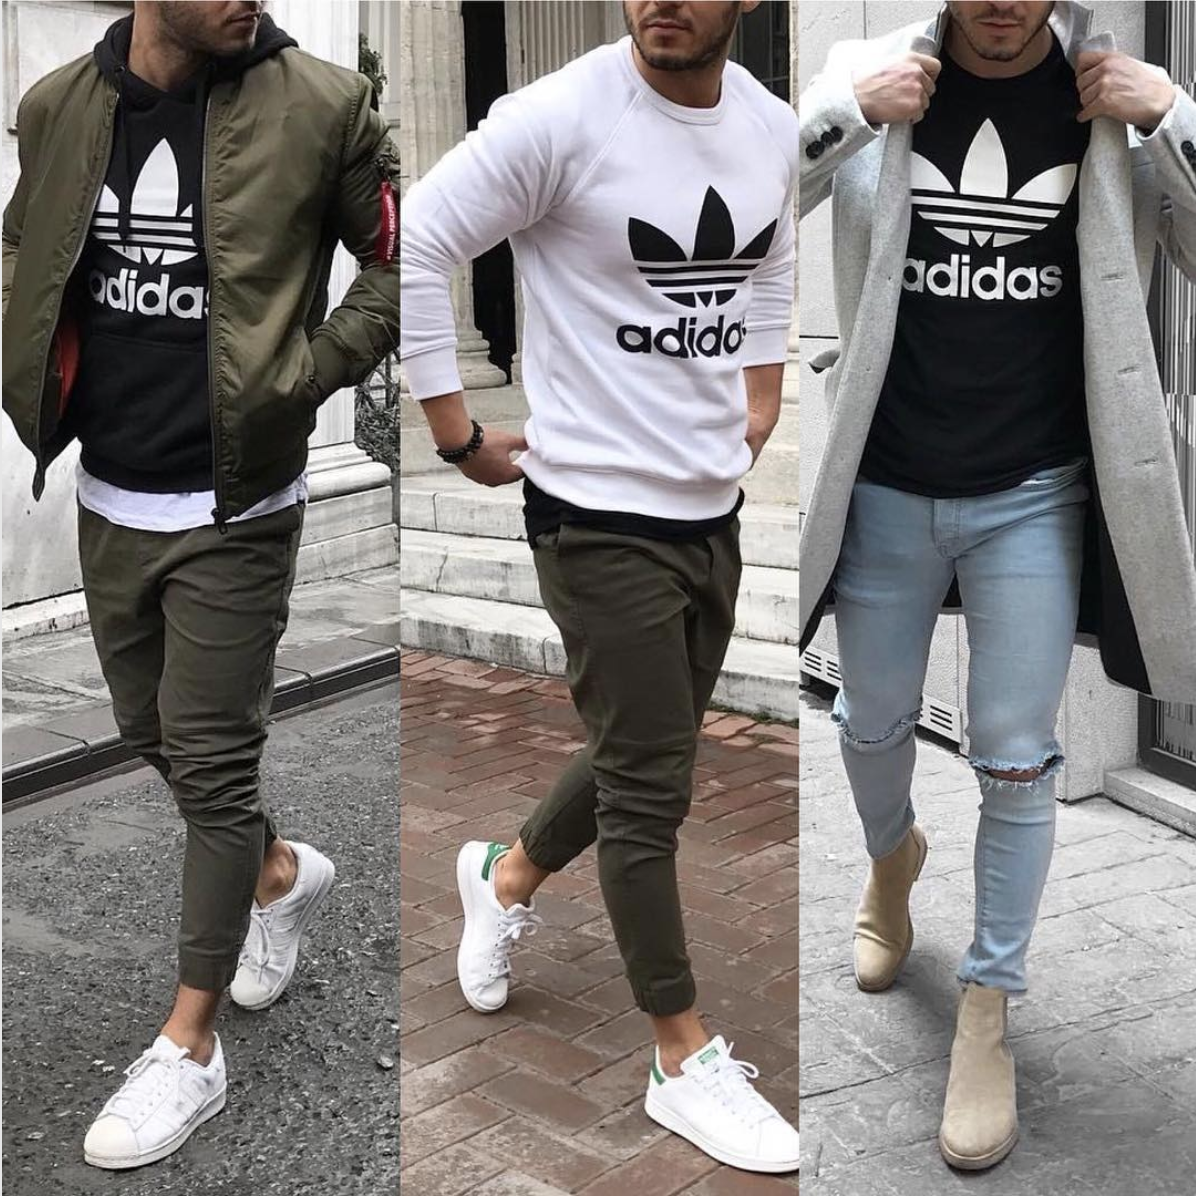 adidas crew neck sweater in three different styles shop. Black Bedroom Furniture Sets. Home Design Ideas